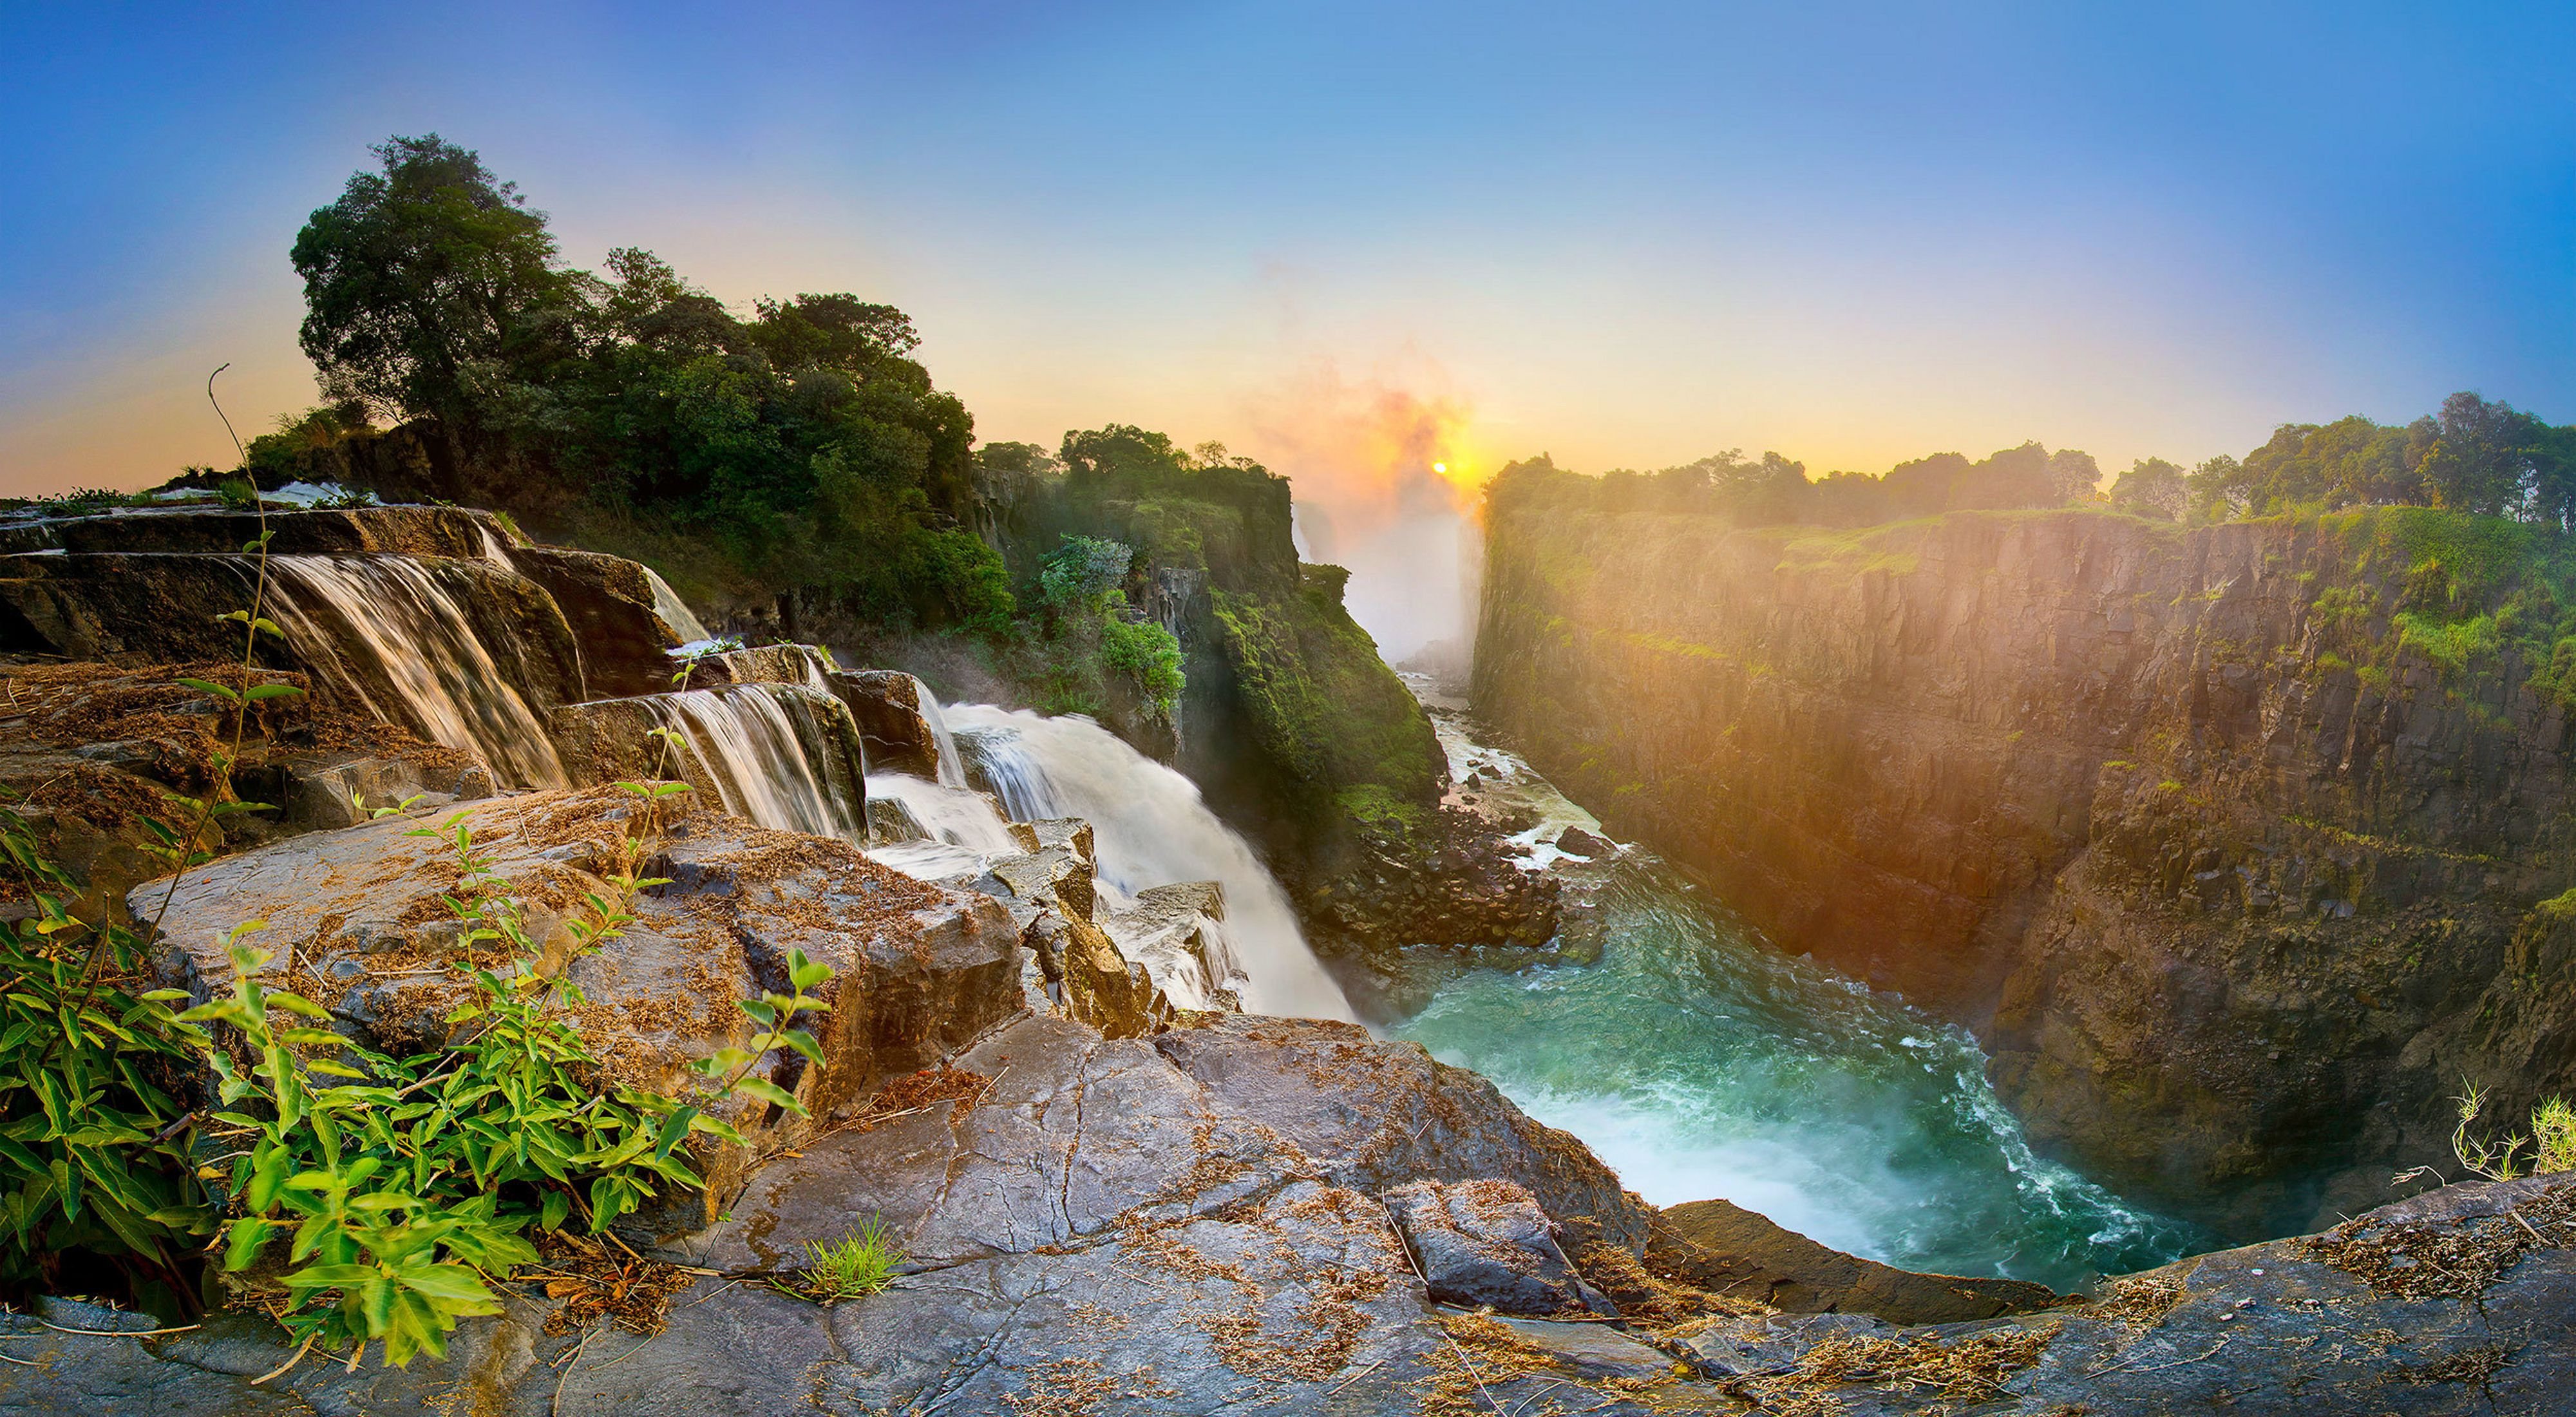 The Devil's Cataract of the Victoria Falls, Zimbabwe.